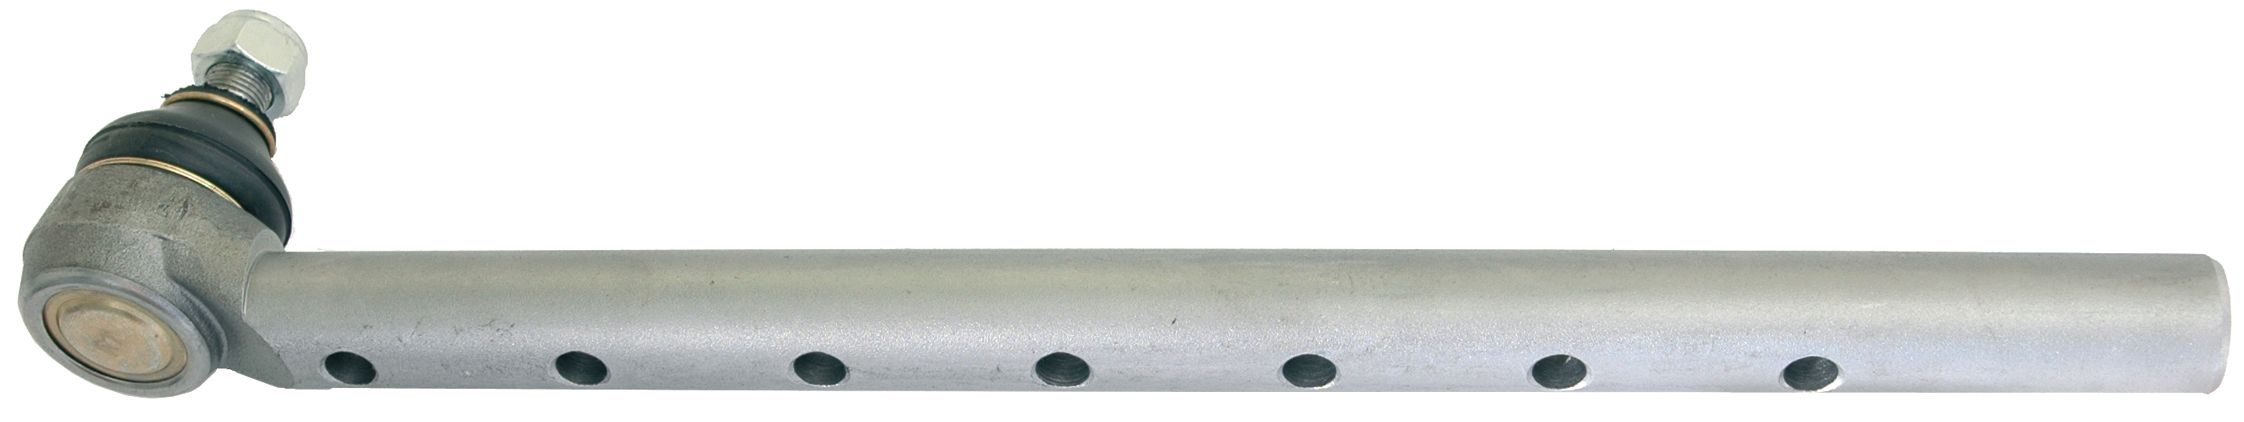 FORD NEW HOLLAND TIE ROD END 65829